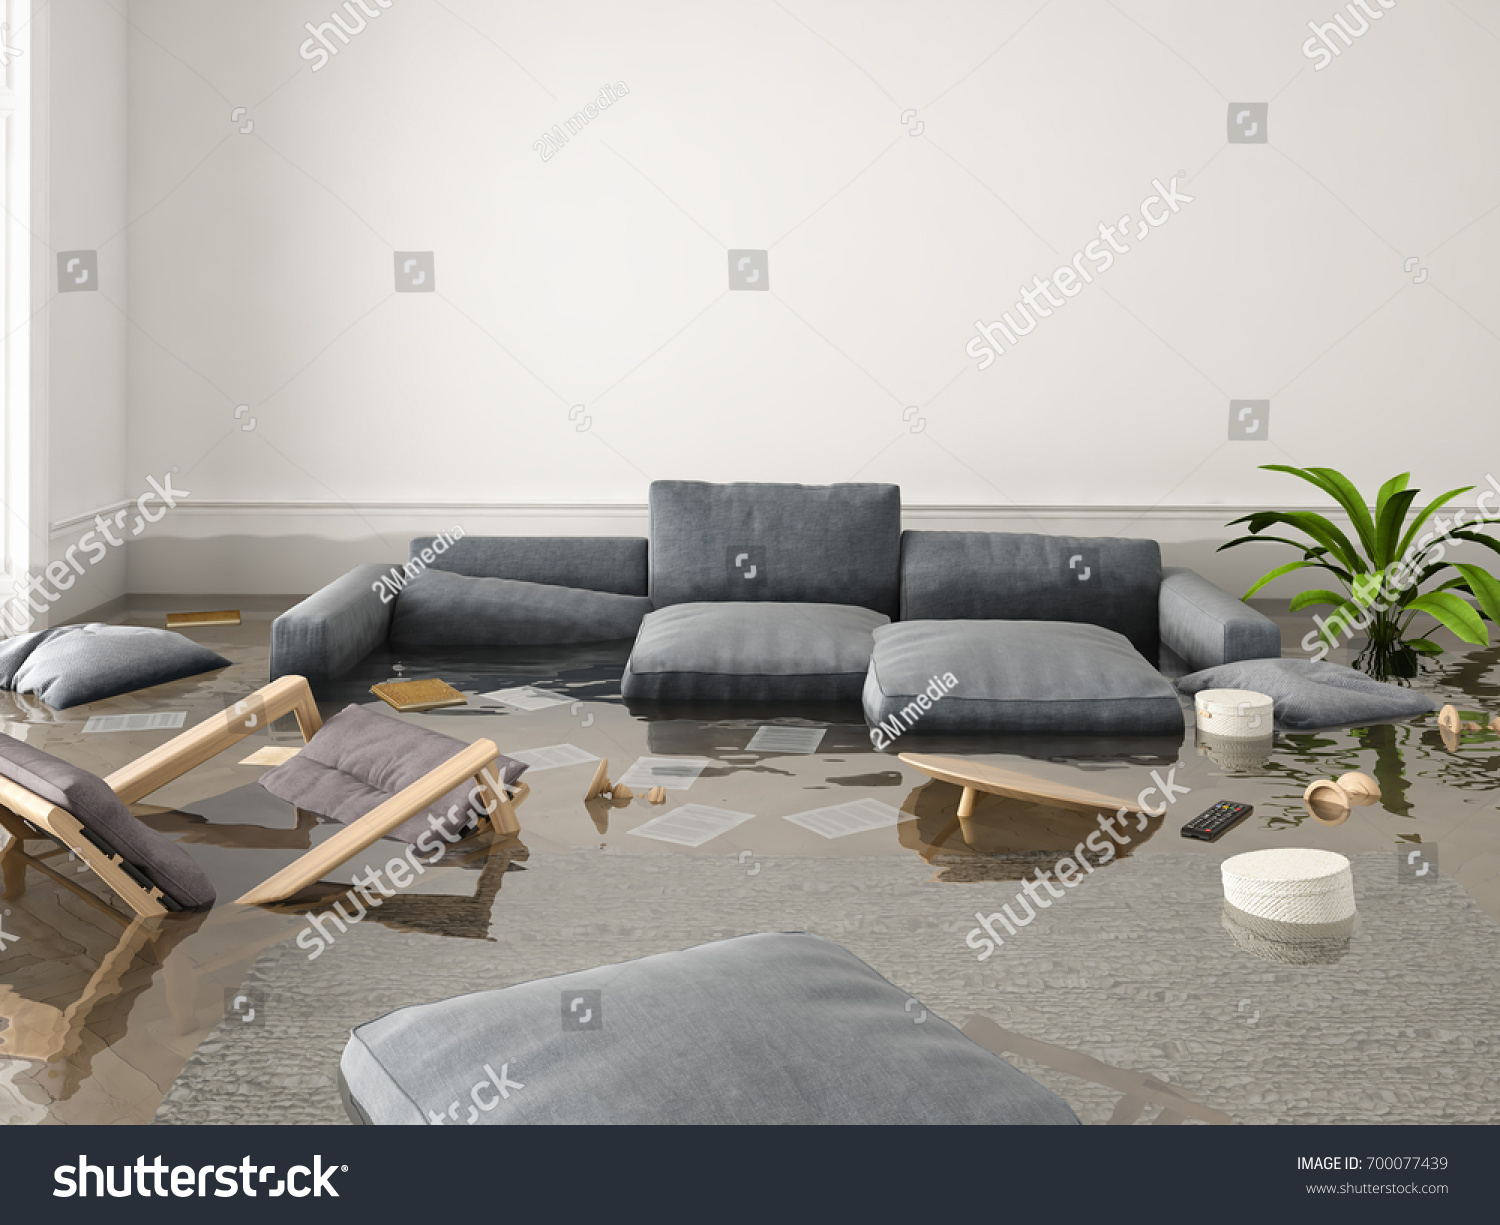 //www.inspiredplumbing.com.au/wp-content/uploads/2020/01/flooded-room.jpg